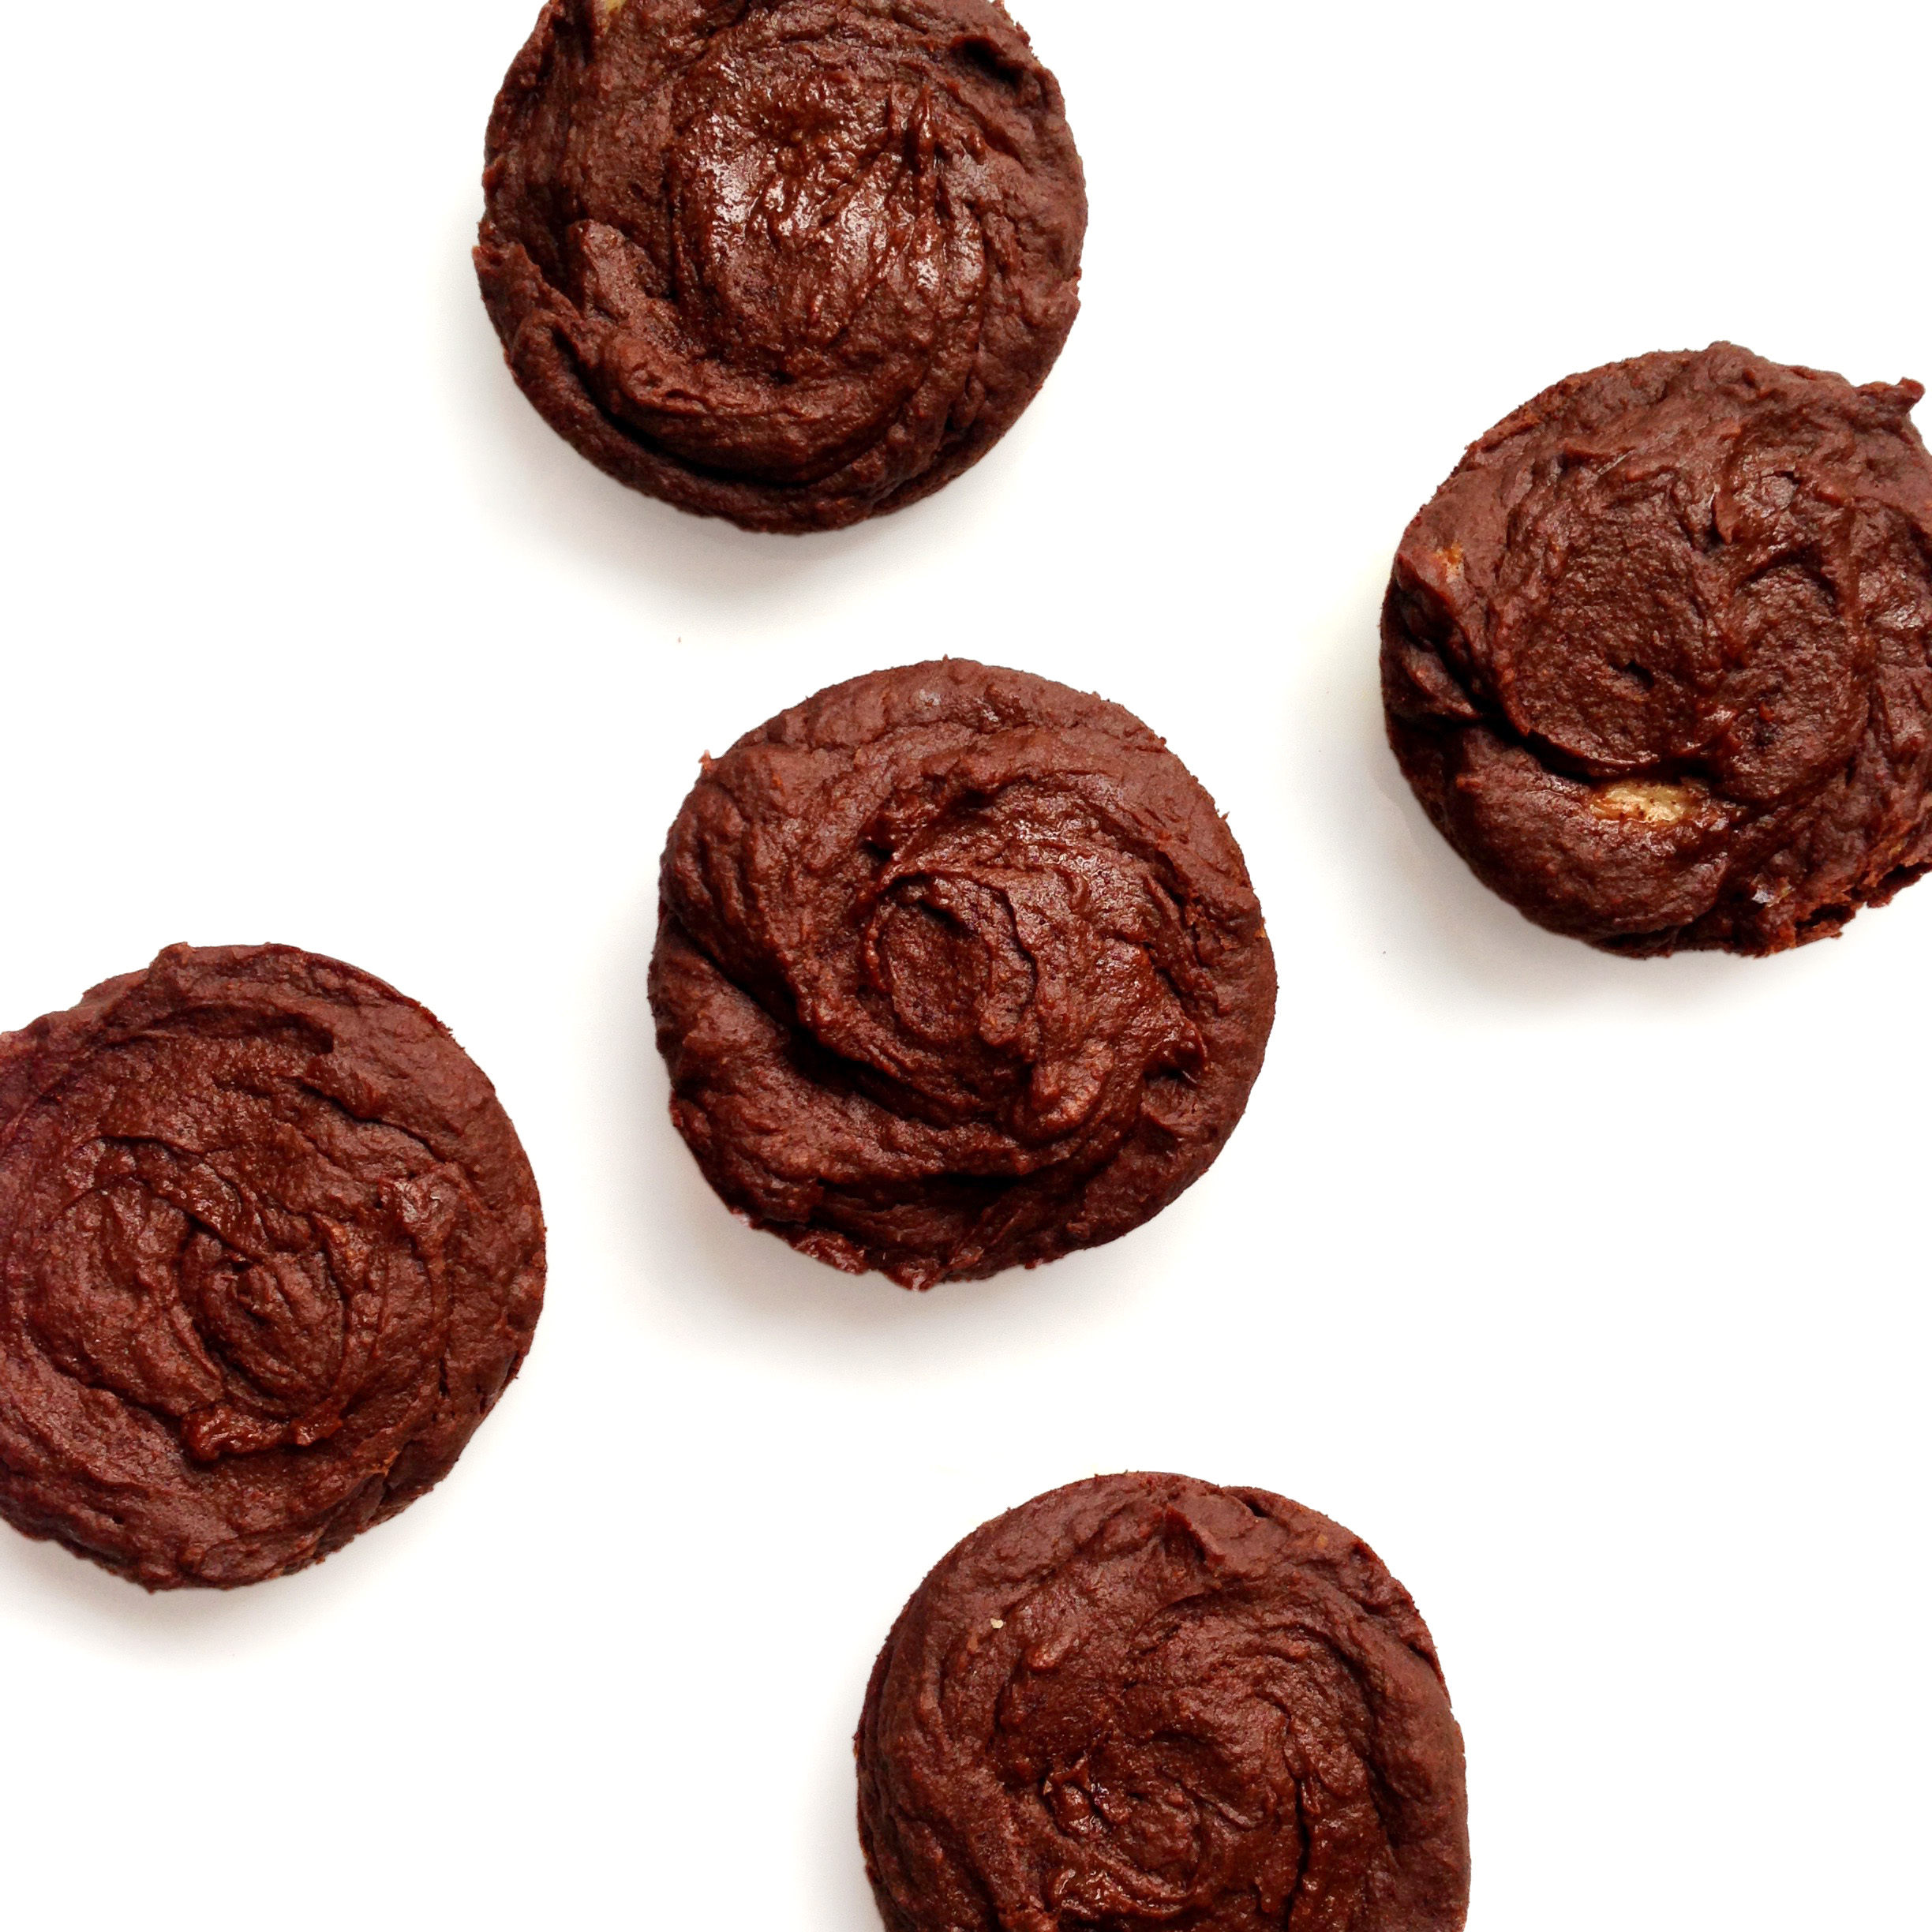 Chocolate Pumpkin Muffins. Satisfying and delicious without sugar, flour, or oil! Stay fit and skinny and have a treat too!